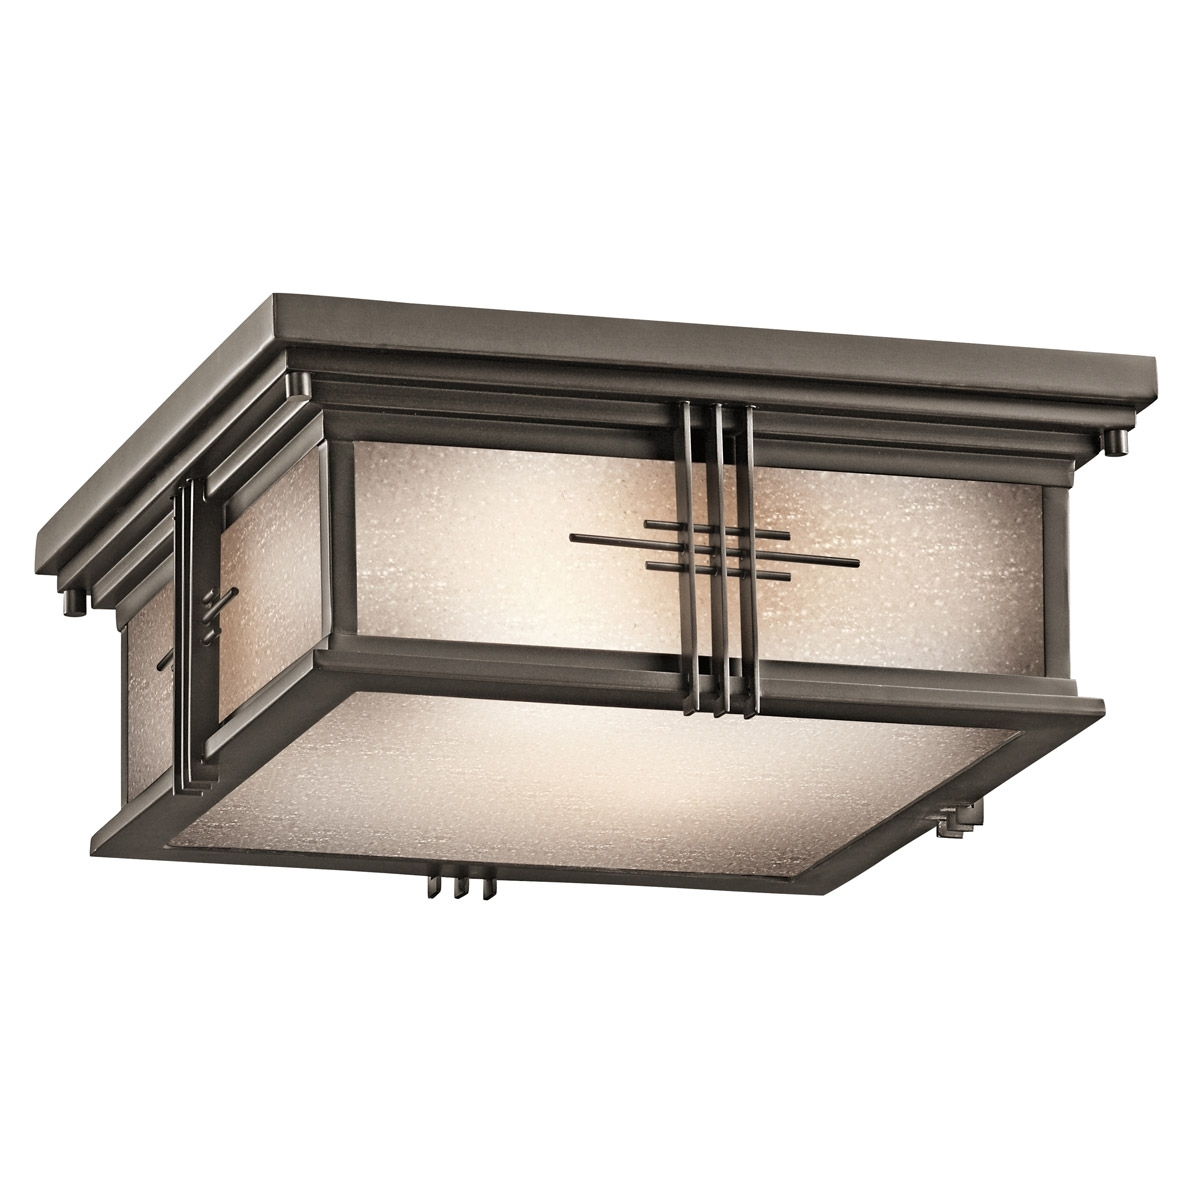 Inspiration about 49164Oz Portman Square Outdoor Flush Mount Ceiling Fixture Intended For Cheap Outdoor Ceiling Lights (#9 of 15)